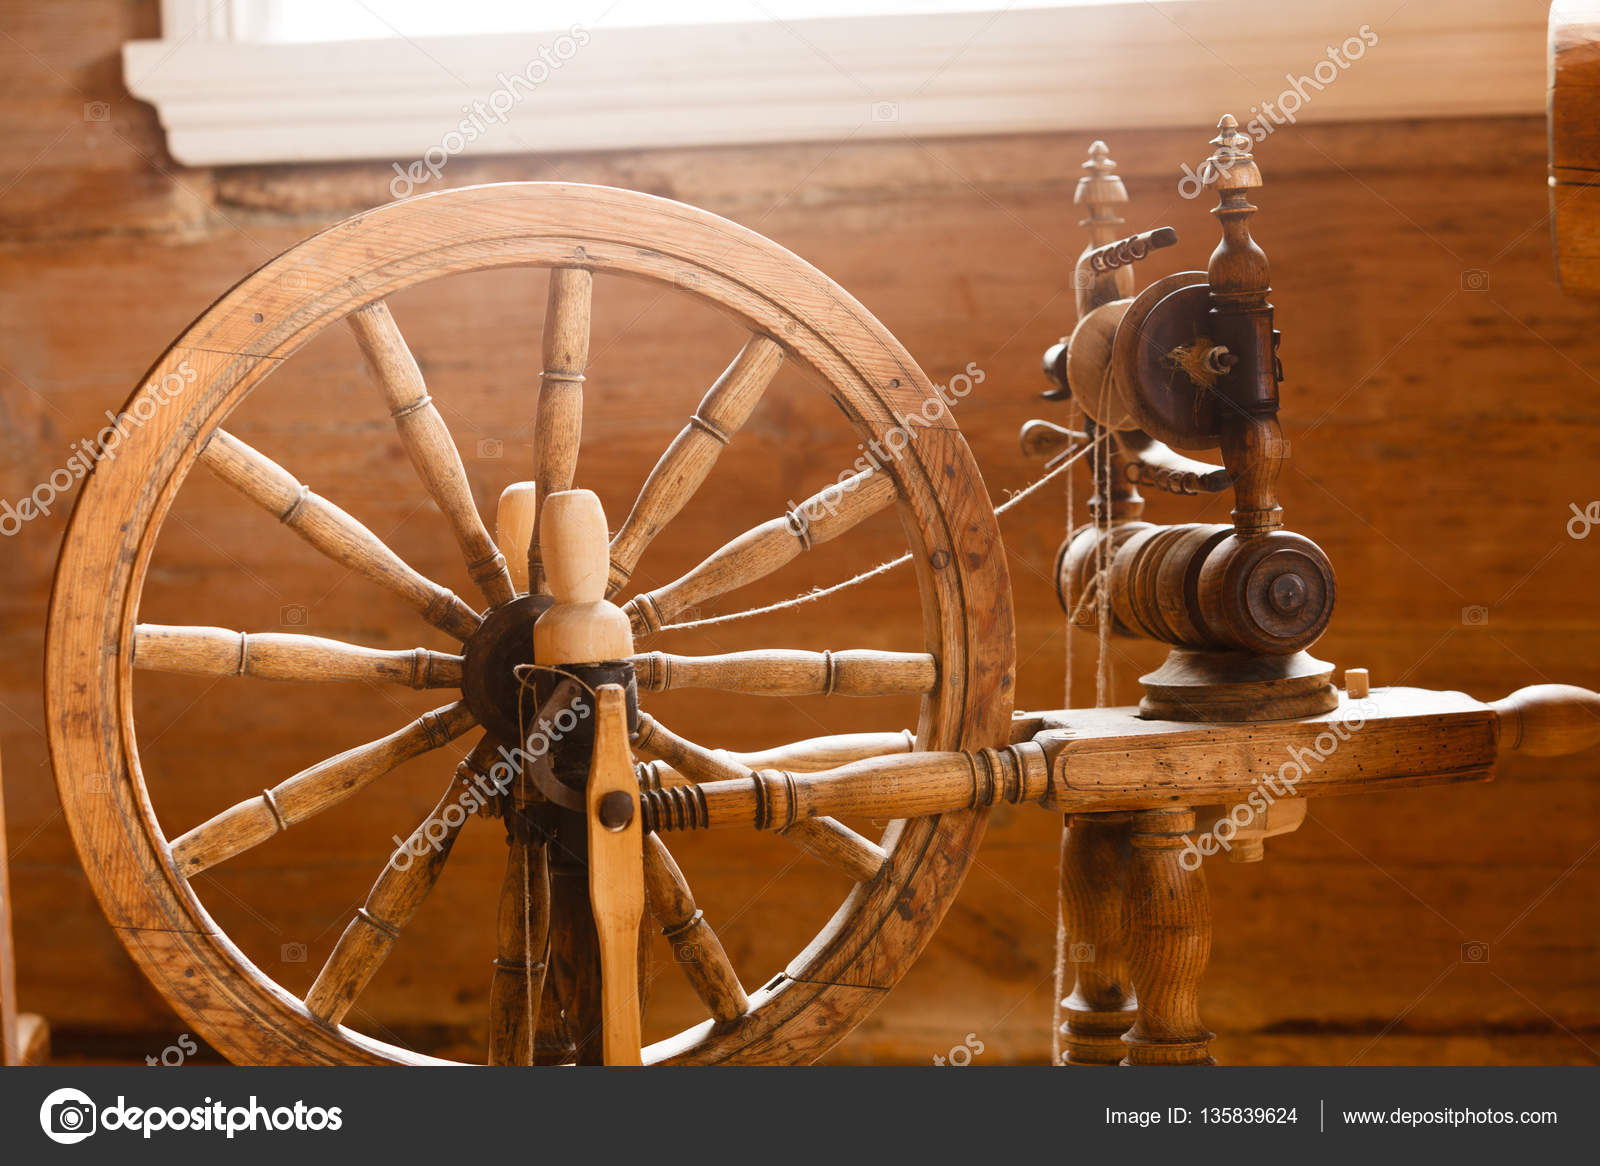 Pictures Old Spinning Wheels Oldfashioned Wooden Distaff Spindle Spinning Wheel Stock Photo C Voyagerix 135839624